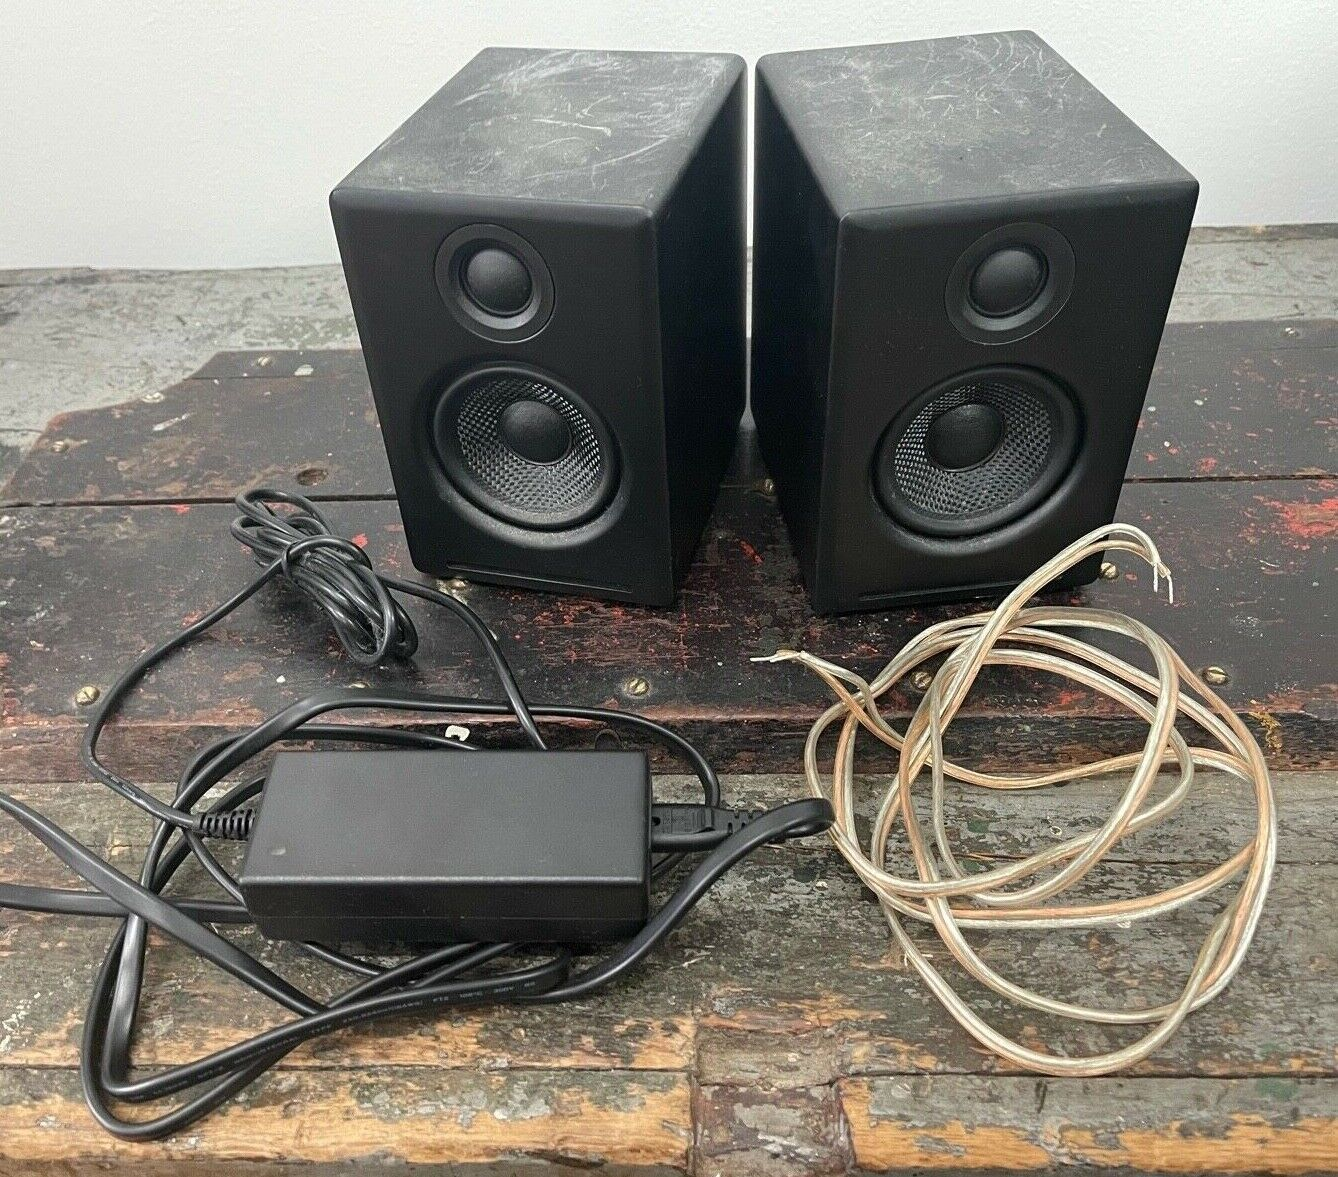 Audioengine A2 Black Desktop Powered Speakers - pair of two (2). Buy it now for 179.99